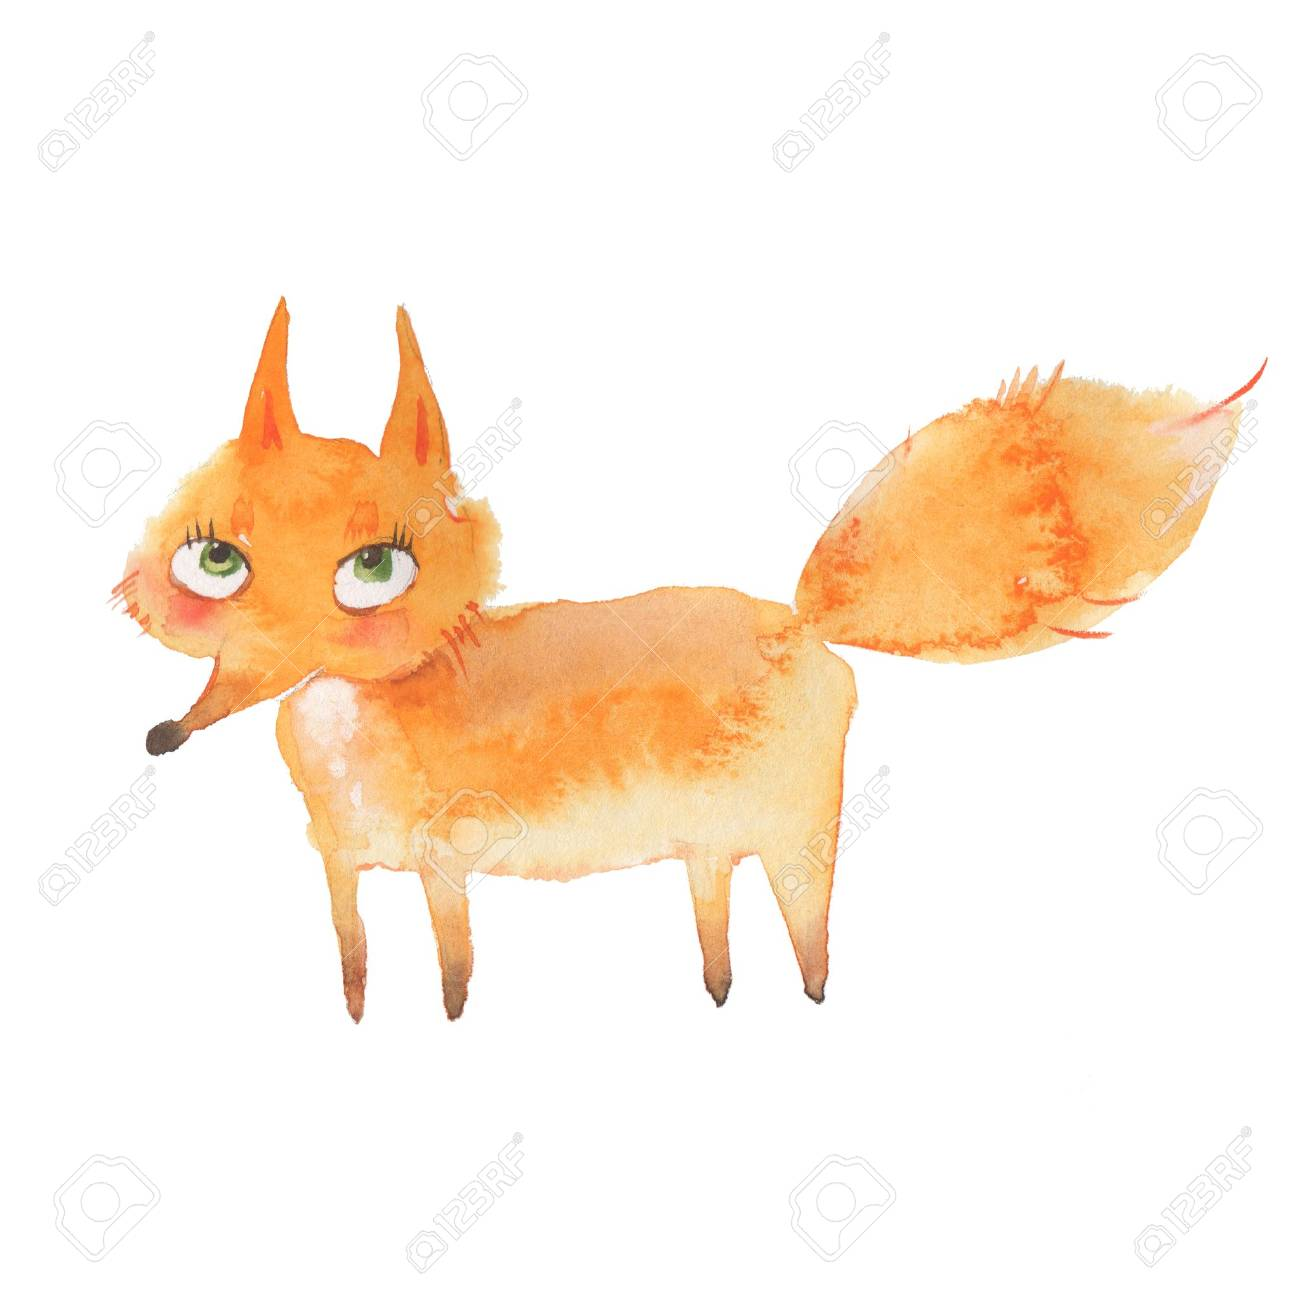 Animal set. Fox. Watercolor illustration, isolated on white - 57495750